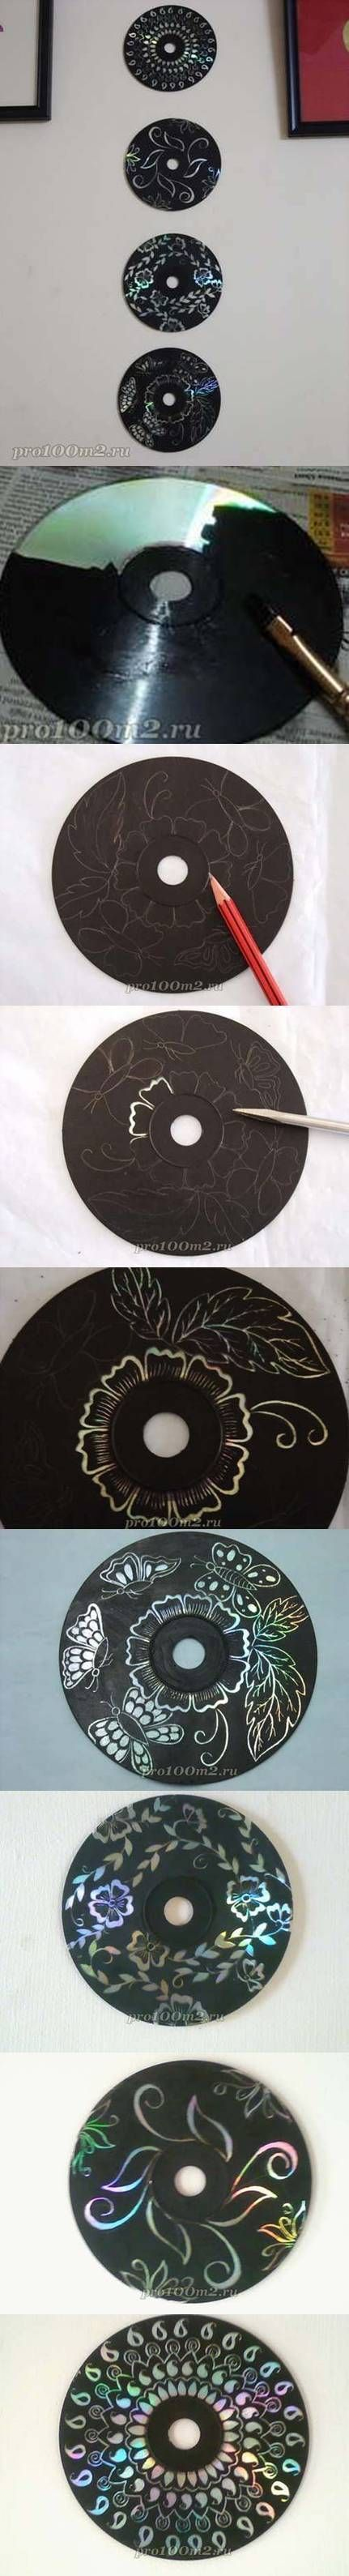 Recycled CDs - Paint with black acrylic paint and then scratch off design